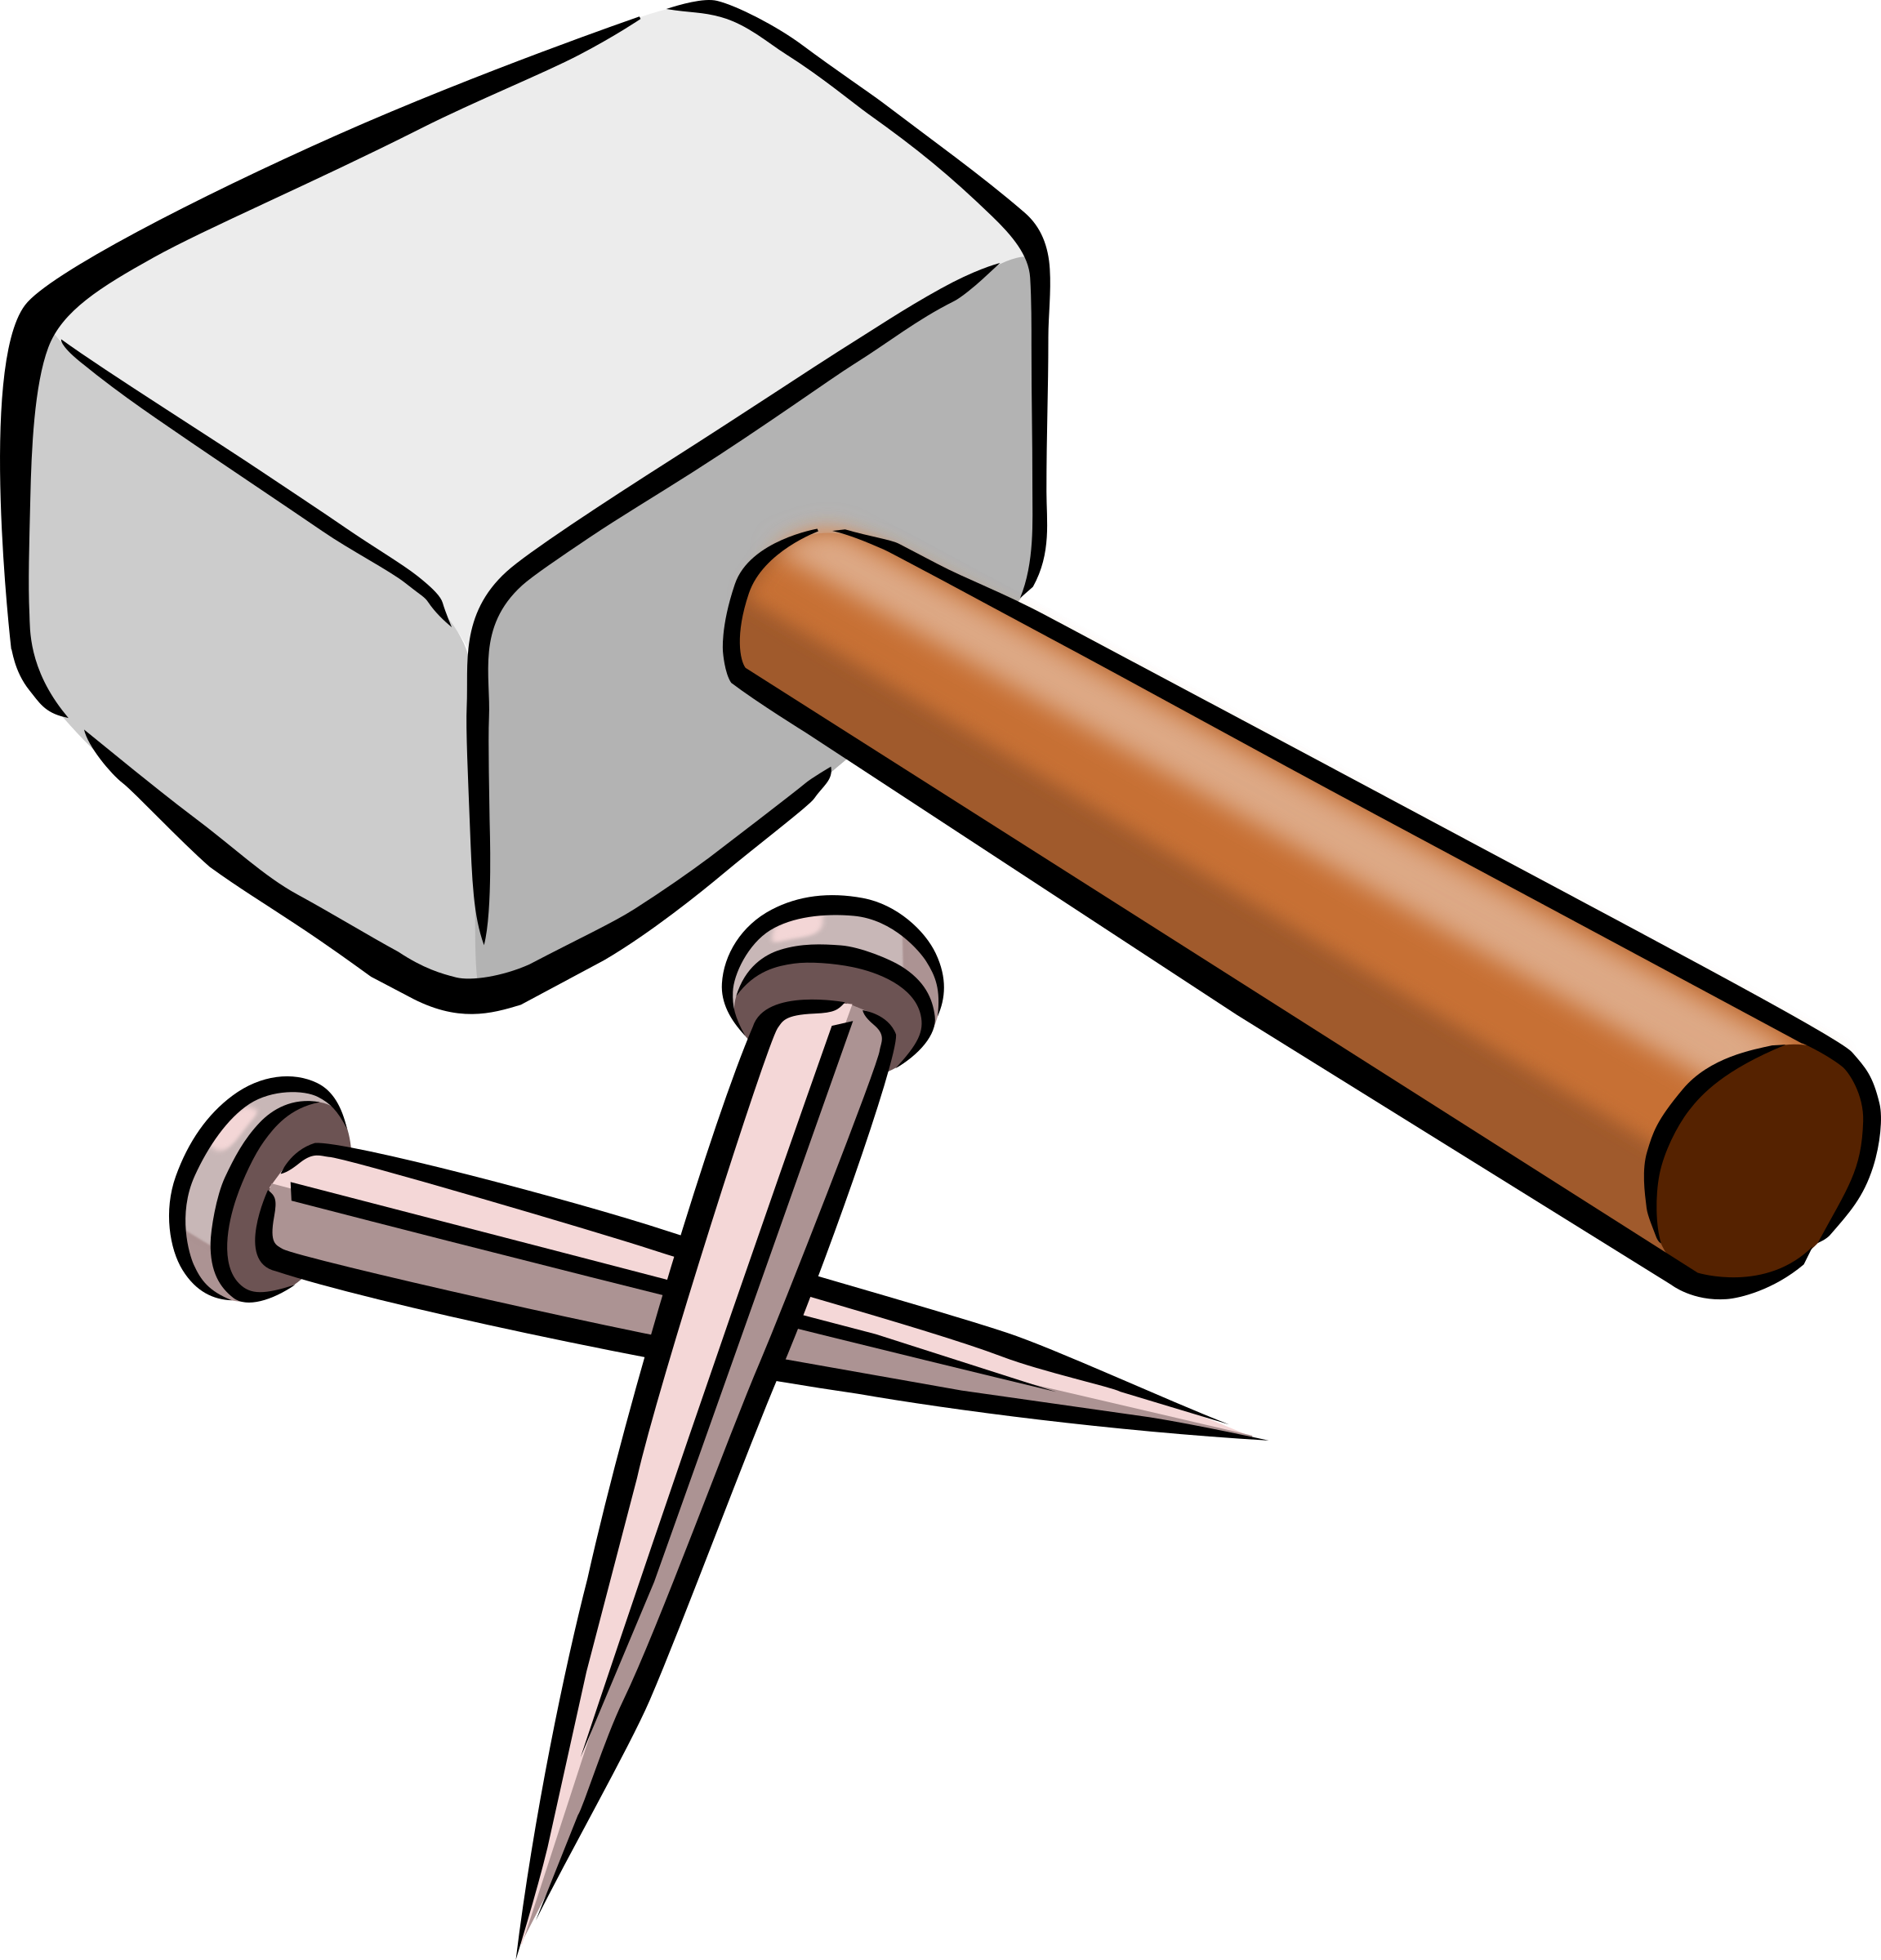 image royalty free download Hammer and Nails Icons PNG